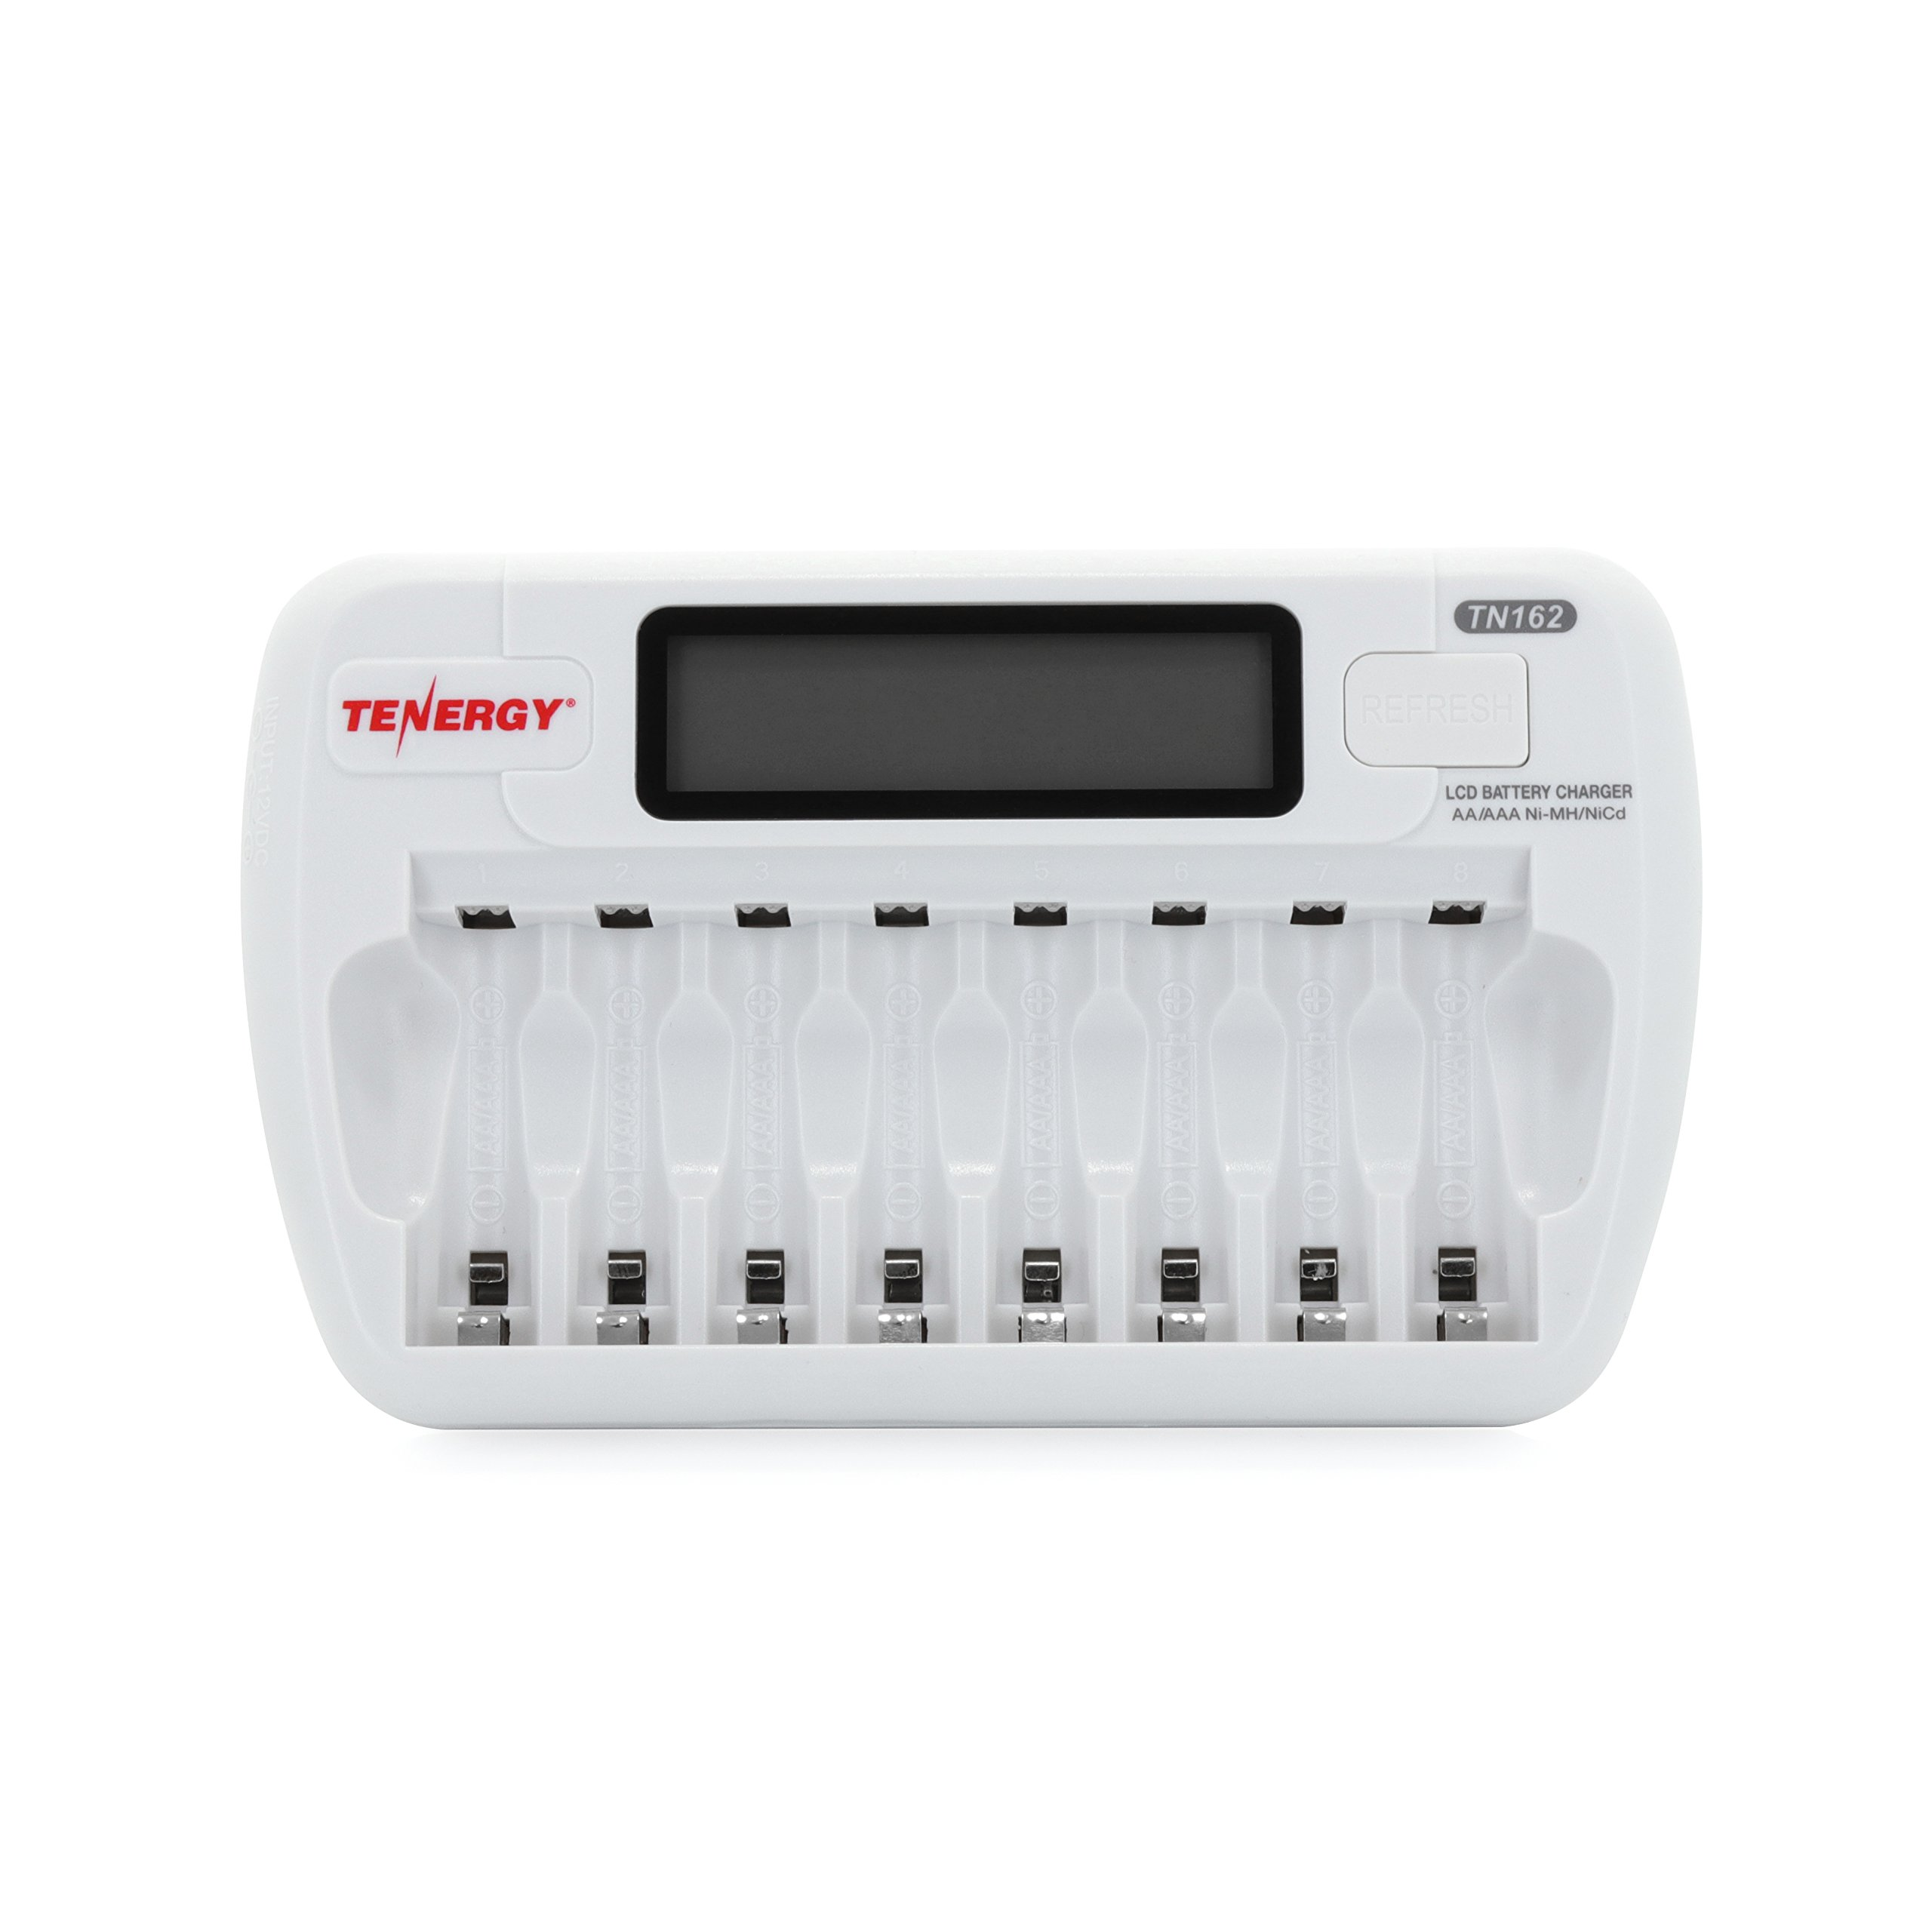 Tenergy TN162 8-Bay Smart LCD Battery Charger for Rechargeable AA/AAA NiMH/NiCd